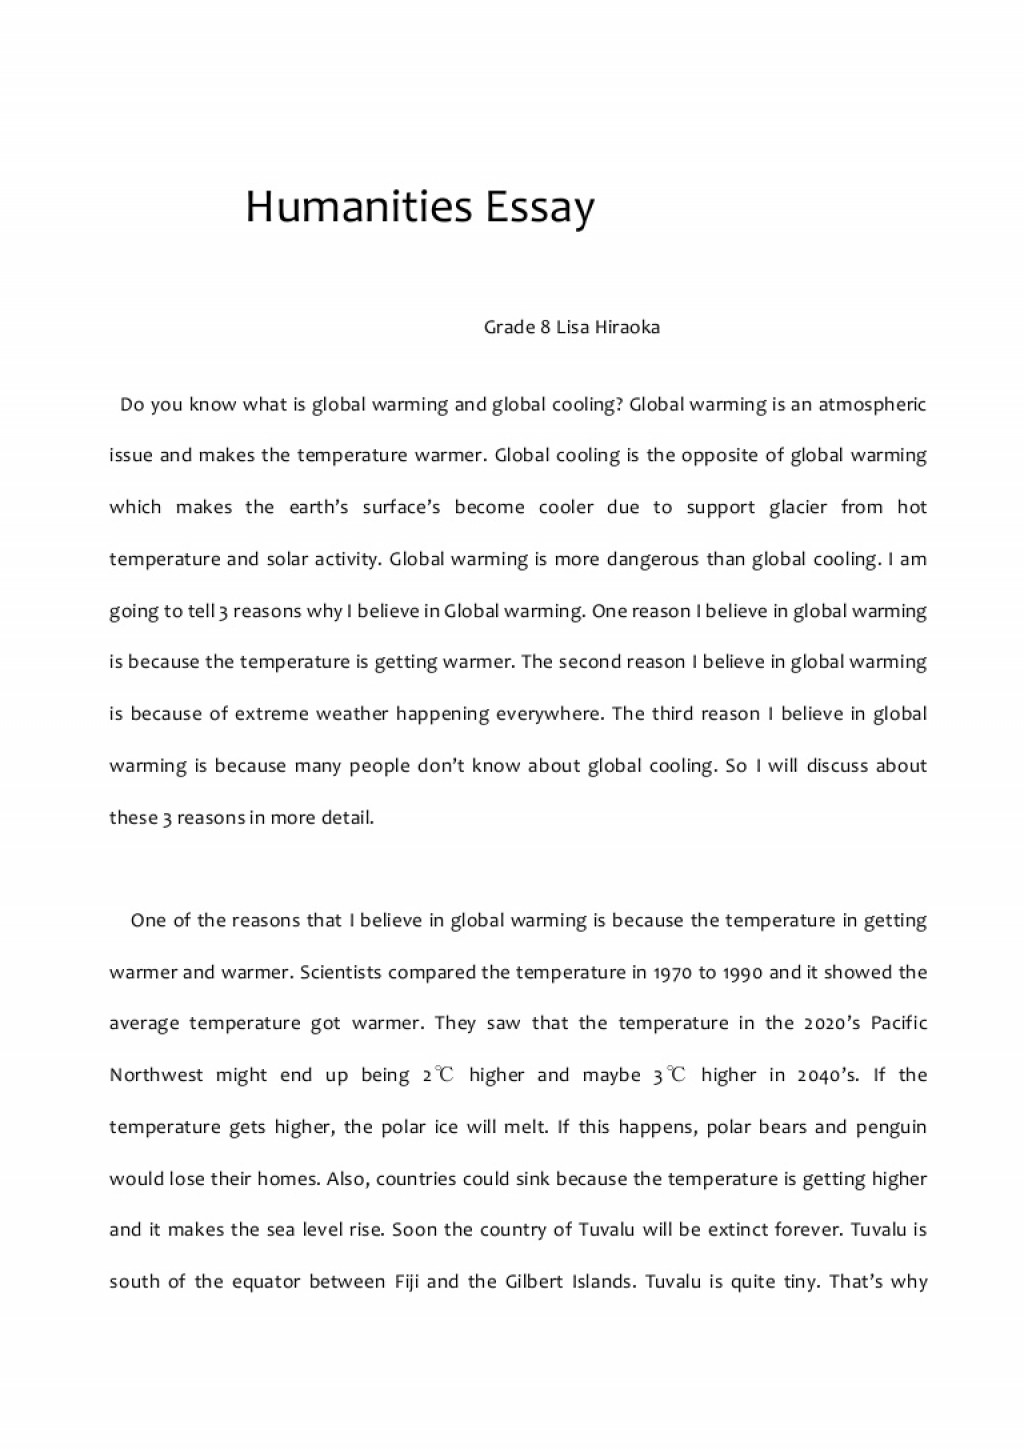 005 Humanitiesessay Phpapp02 Thumbnail Essay On Global Warming Impressive With Introduction And Conclusion Greenhouse Effect In 600 Words Large